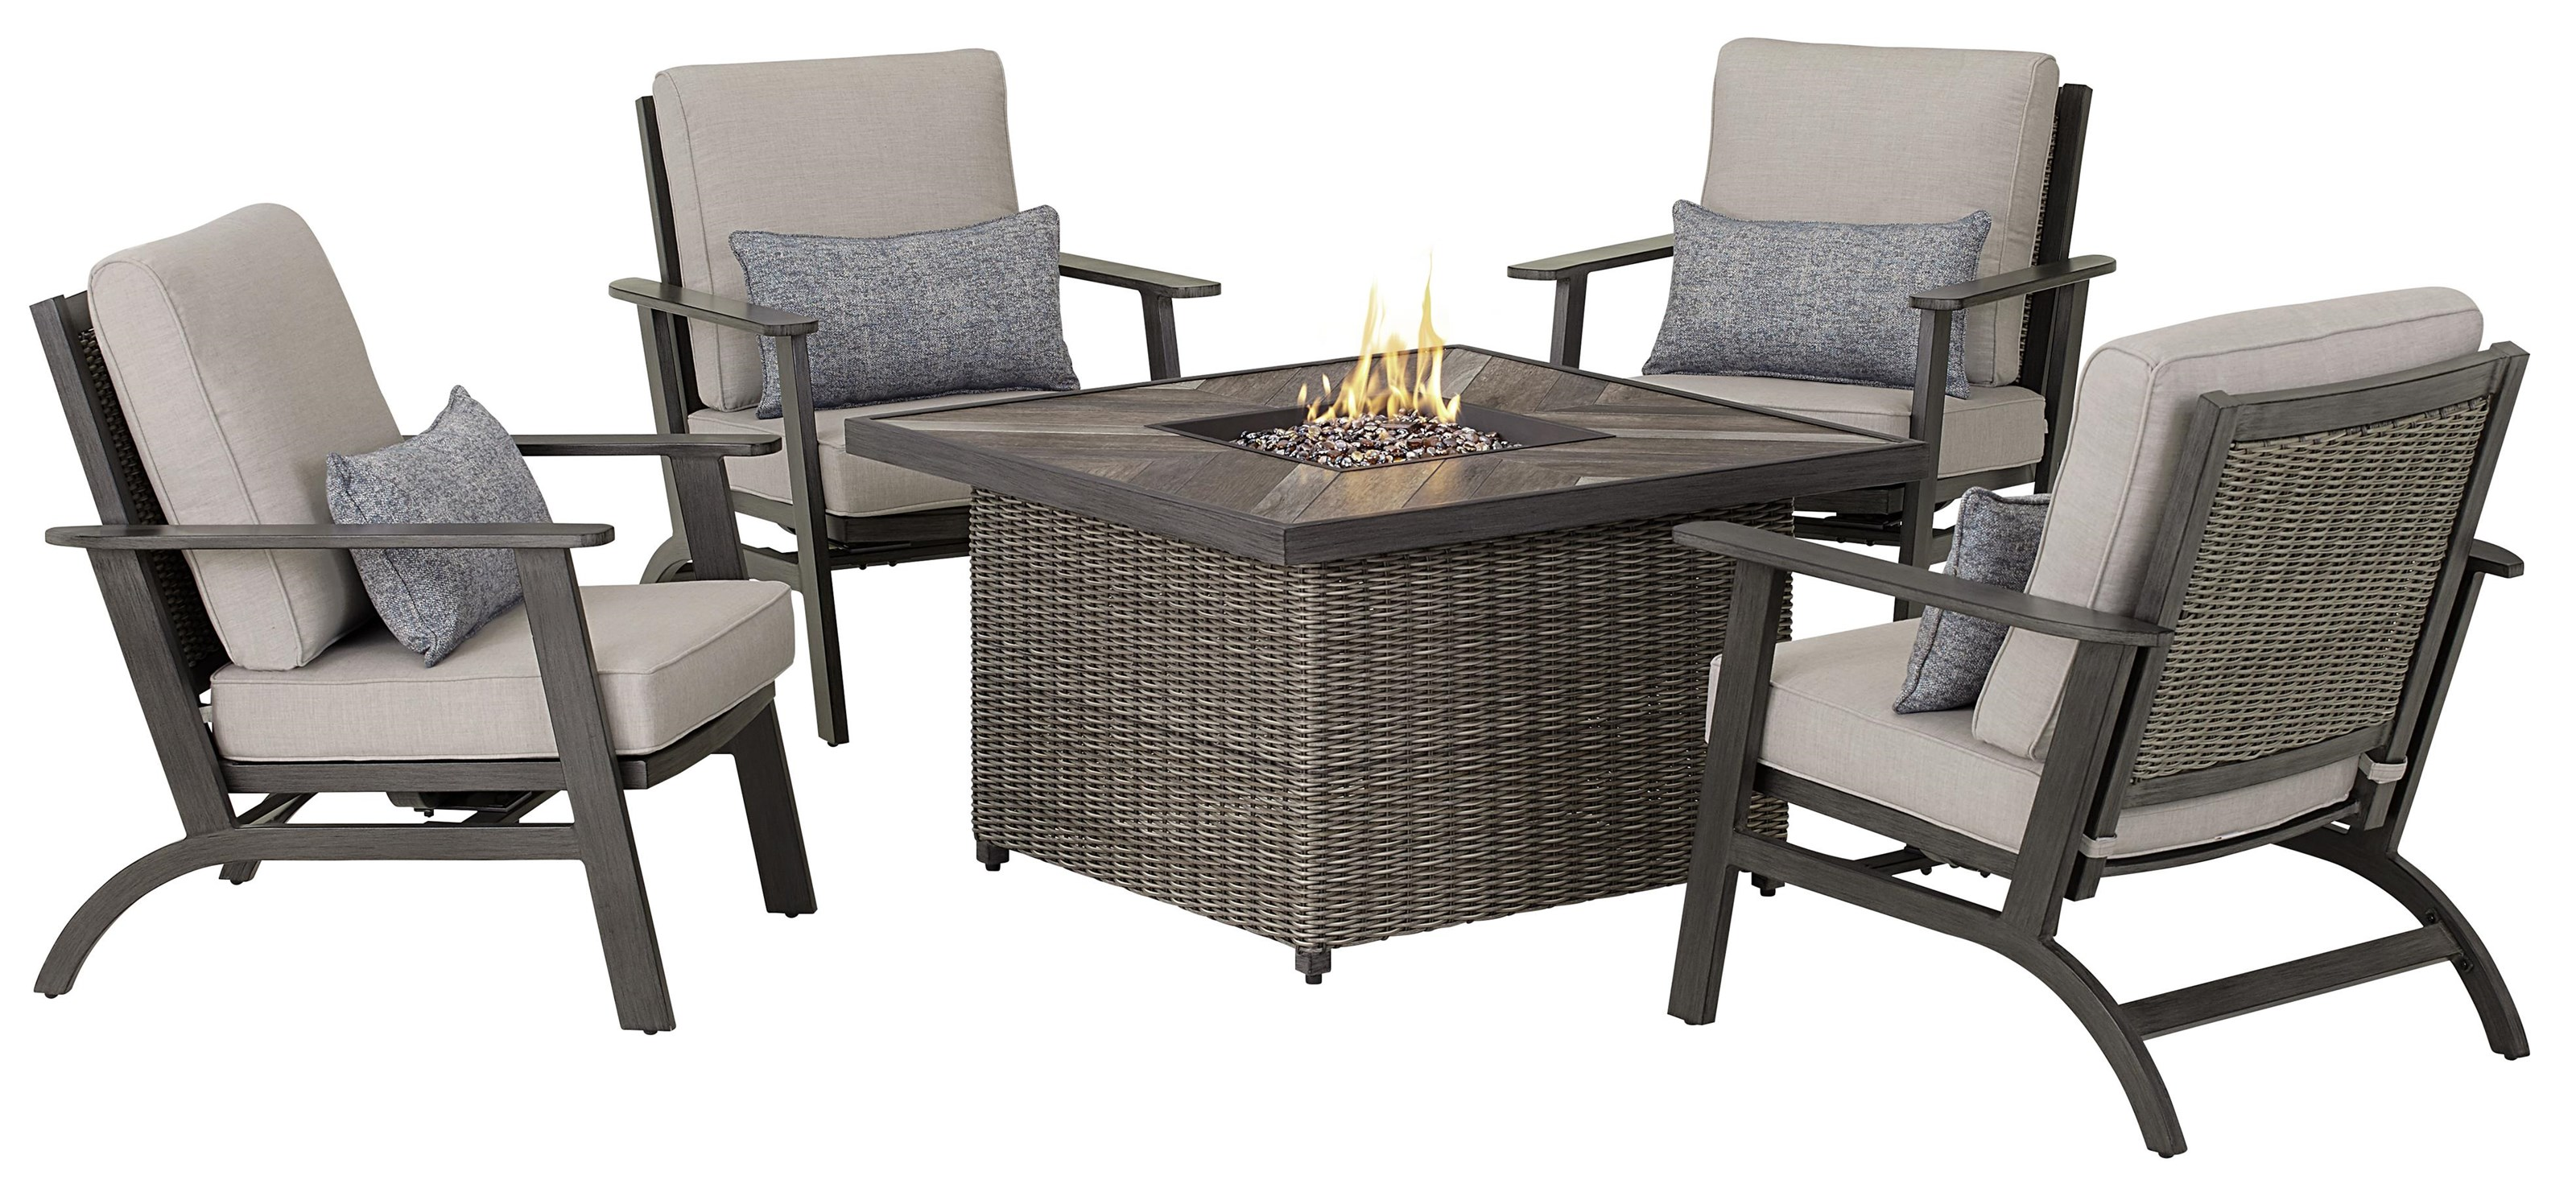 Adison Firepit and 4 Motion Chairs by Apricity Outdoor at Johnny Janosik